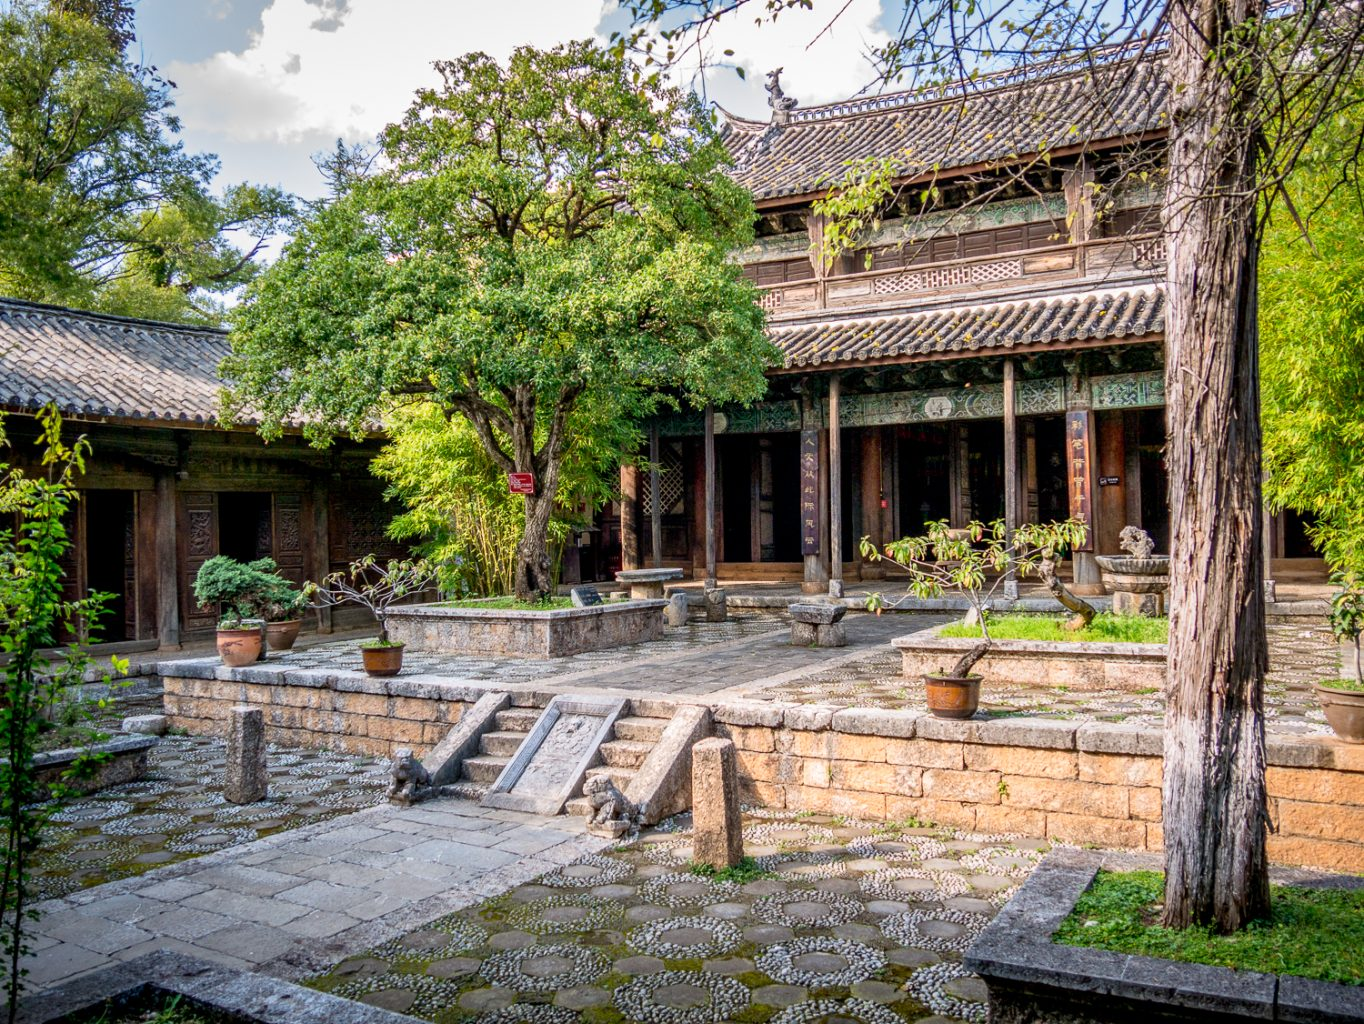 Baihe Courtyard with great visual appeal inside and out